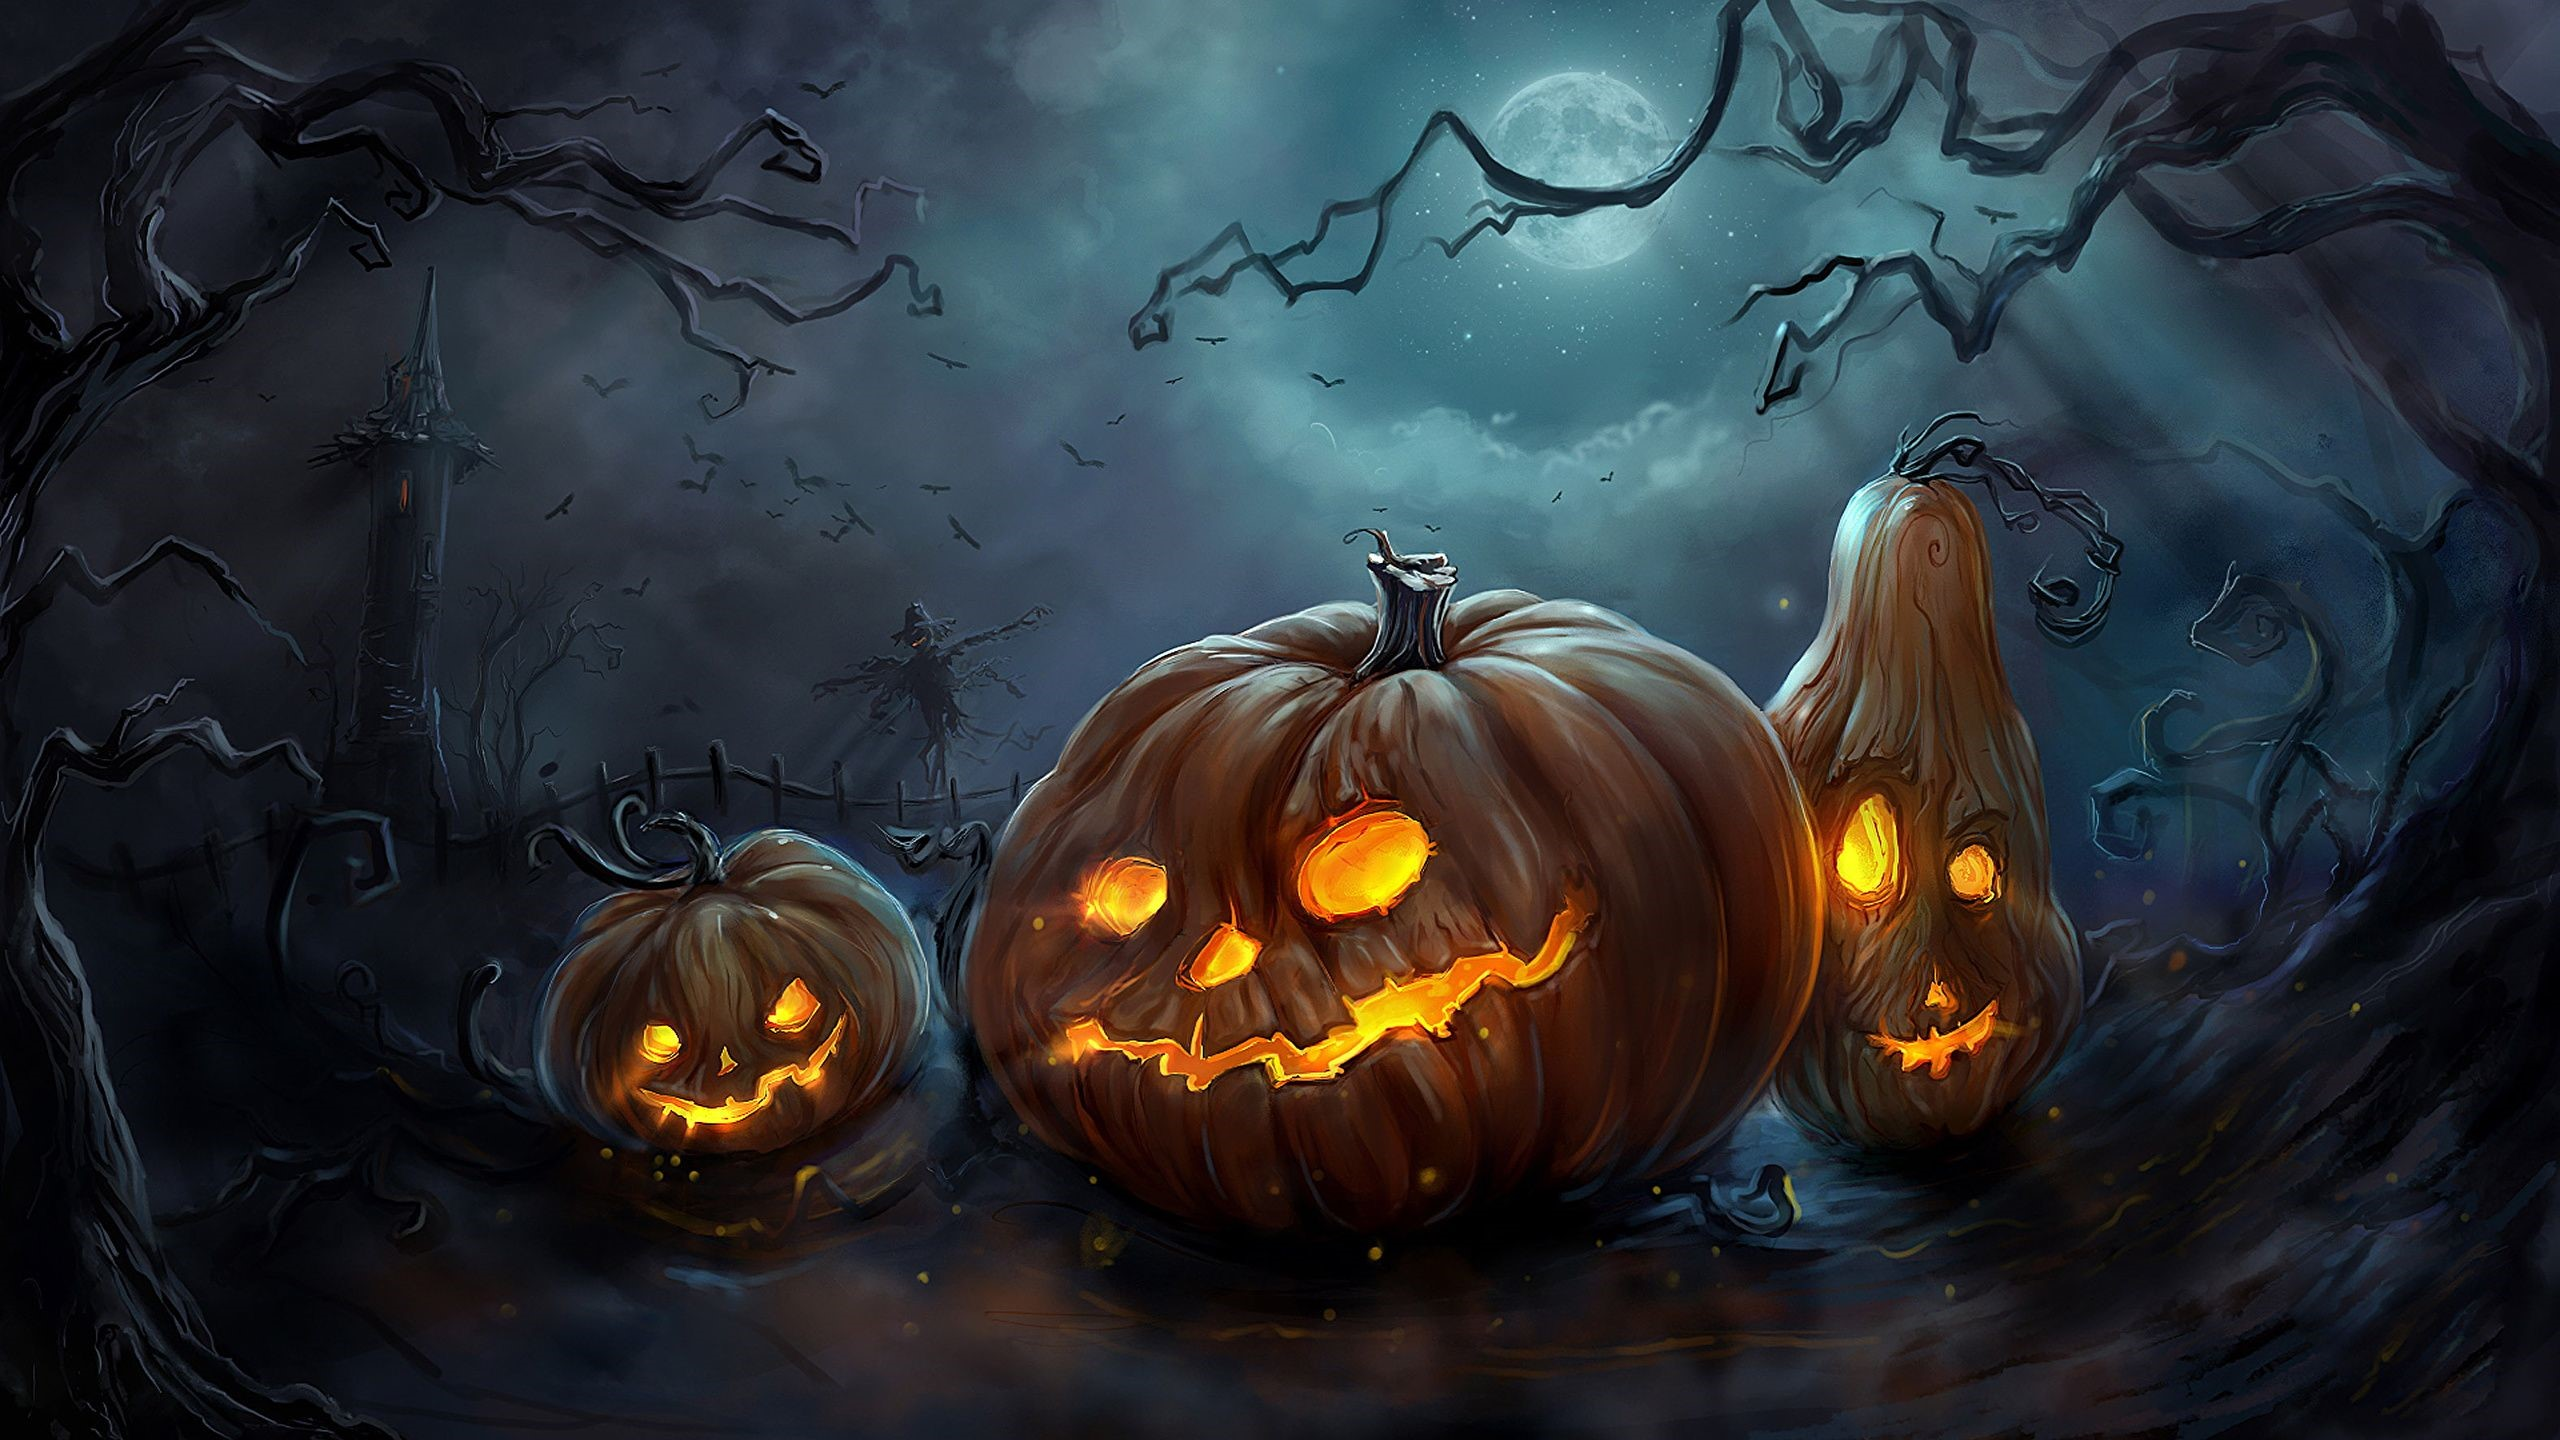 Halloween Pumpkin İllustration Full HD Wallpaper